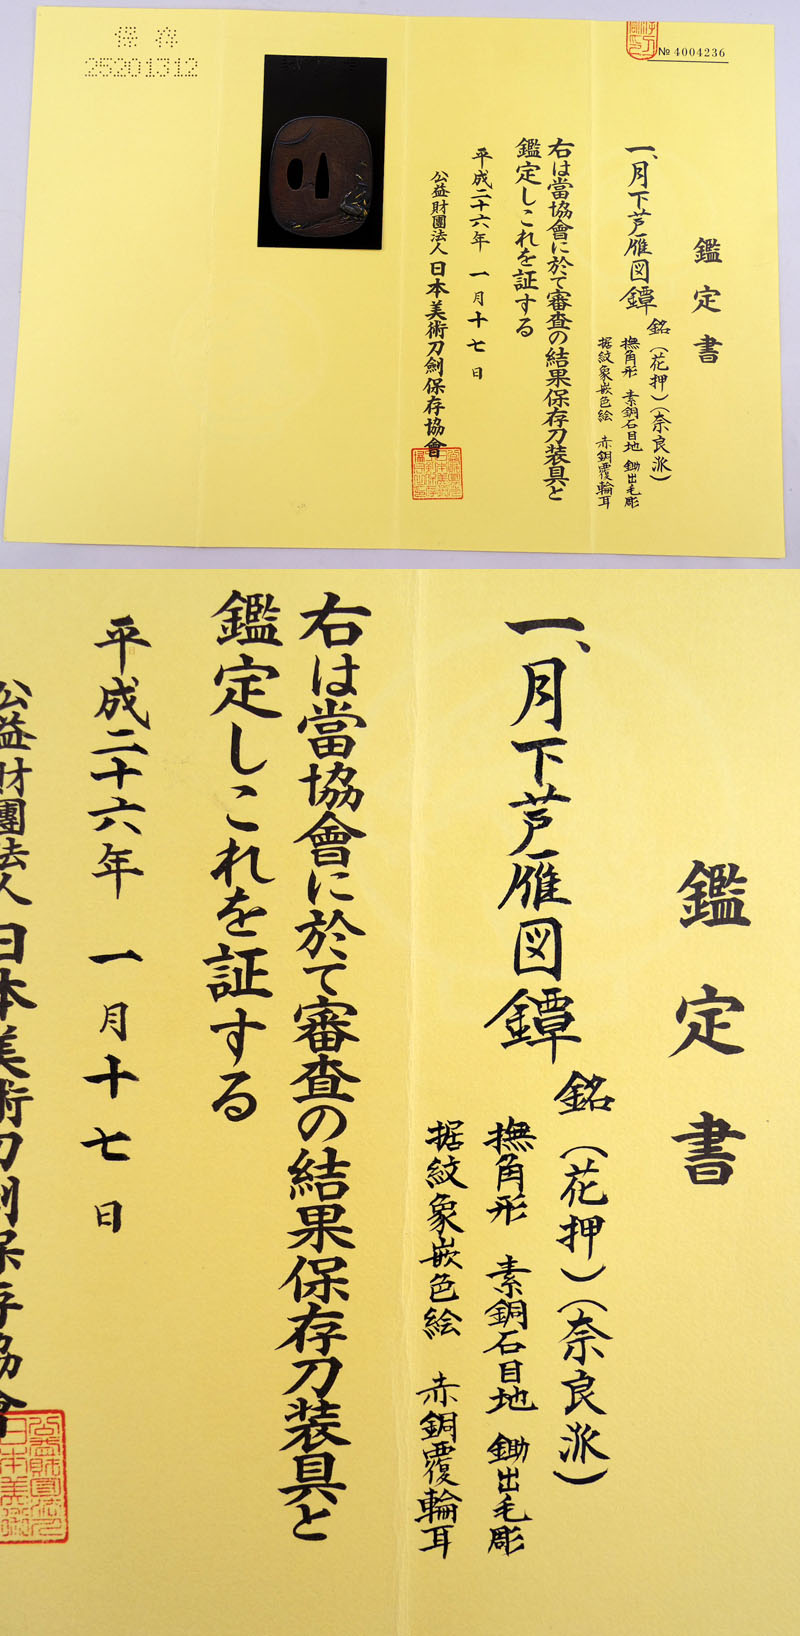 月下芦雁図鍔(花押)(Nara派) Picture of Certificate